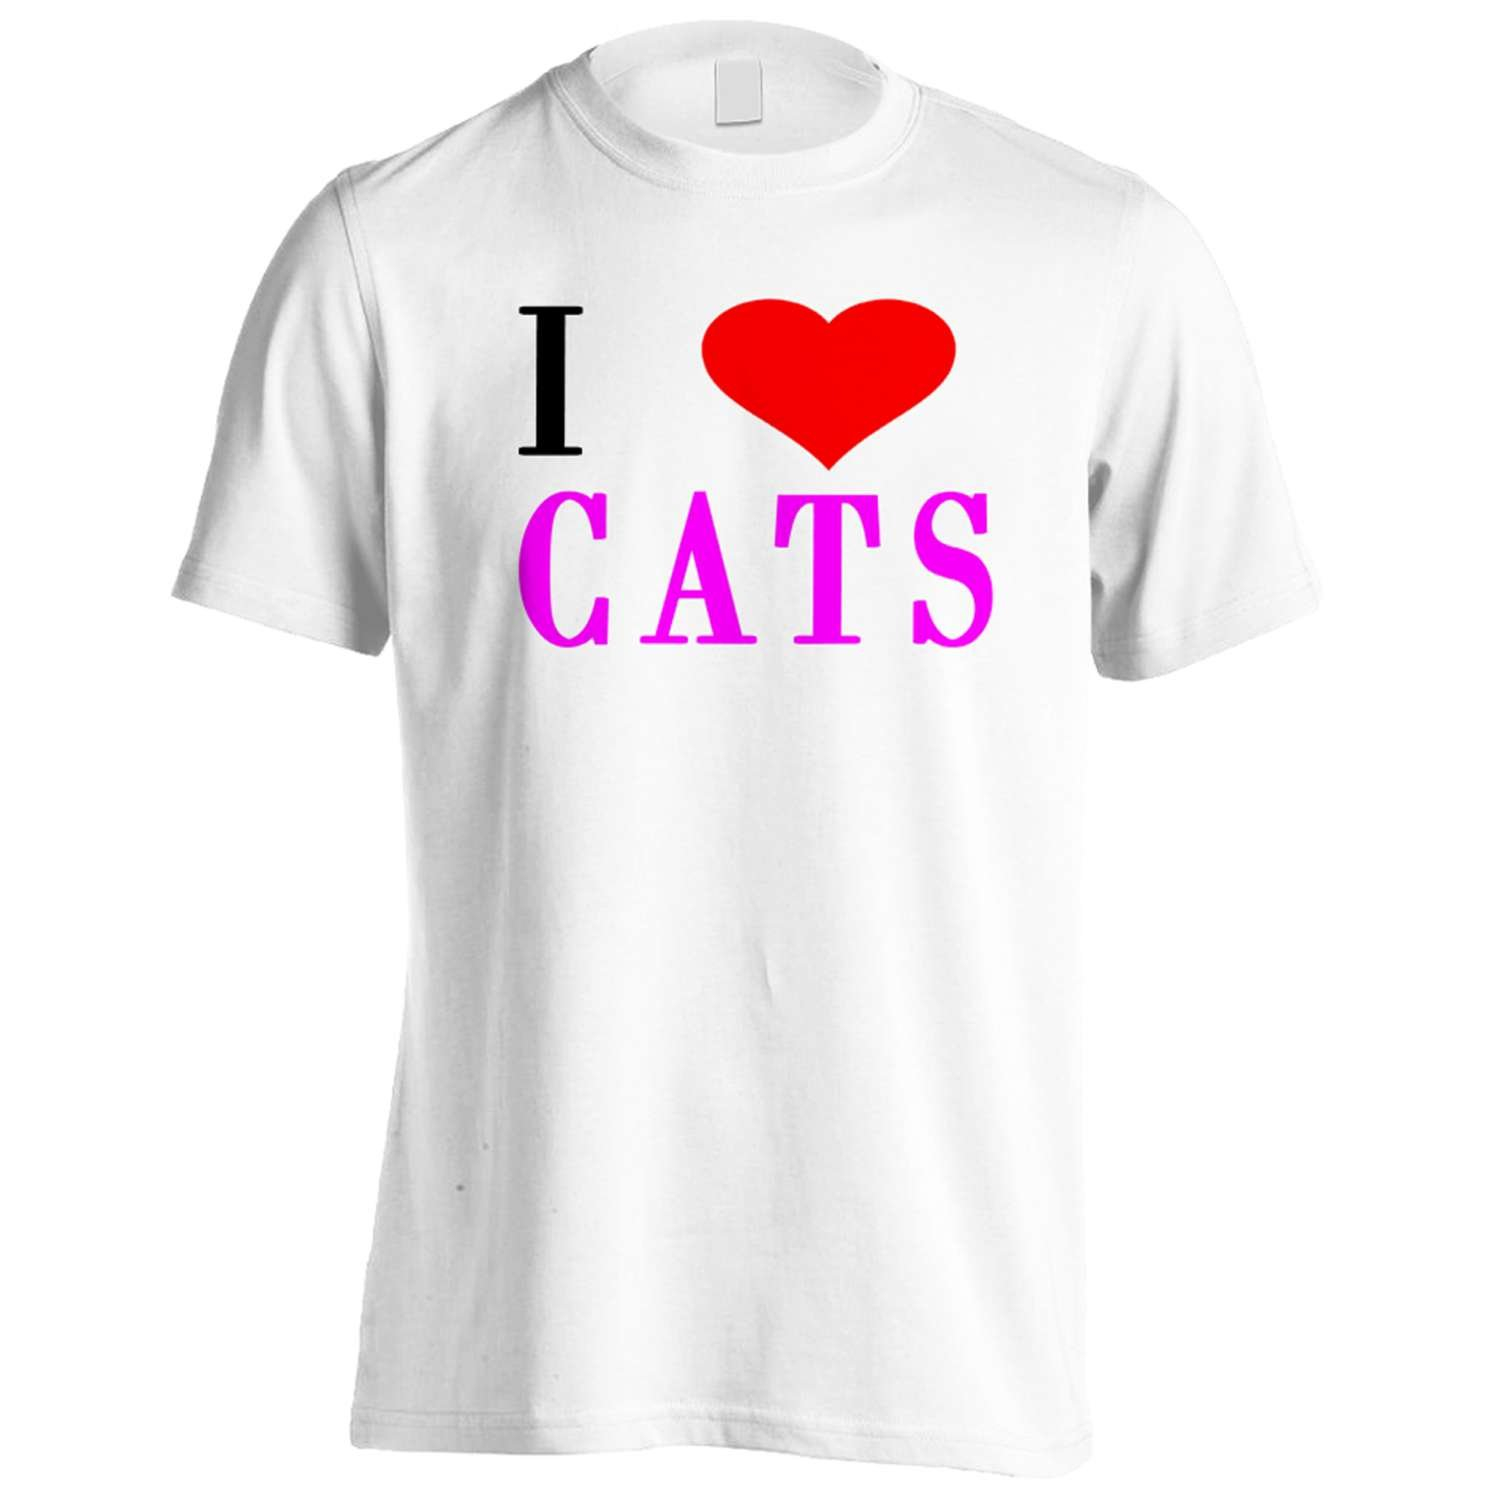 I Love CATS Funny Novelty New Men's T-Shirt Tee h23m